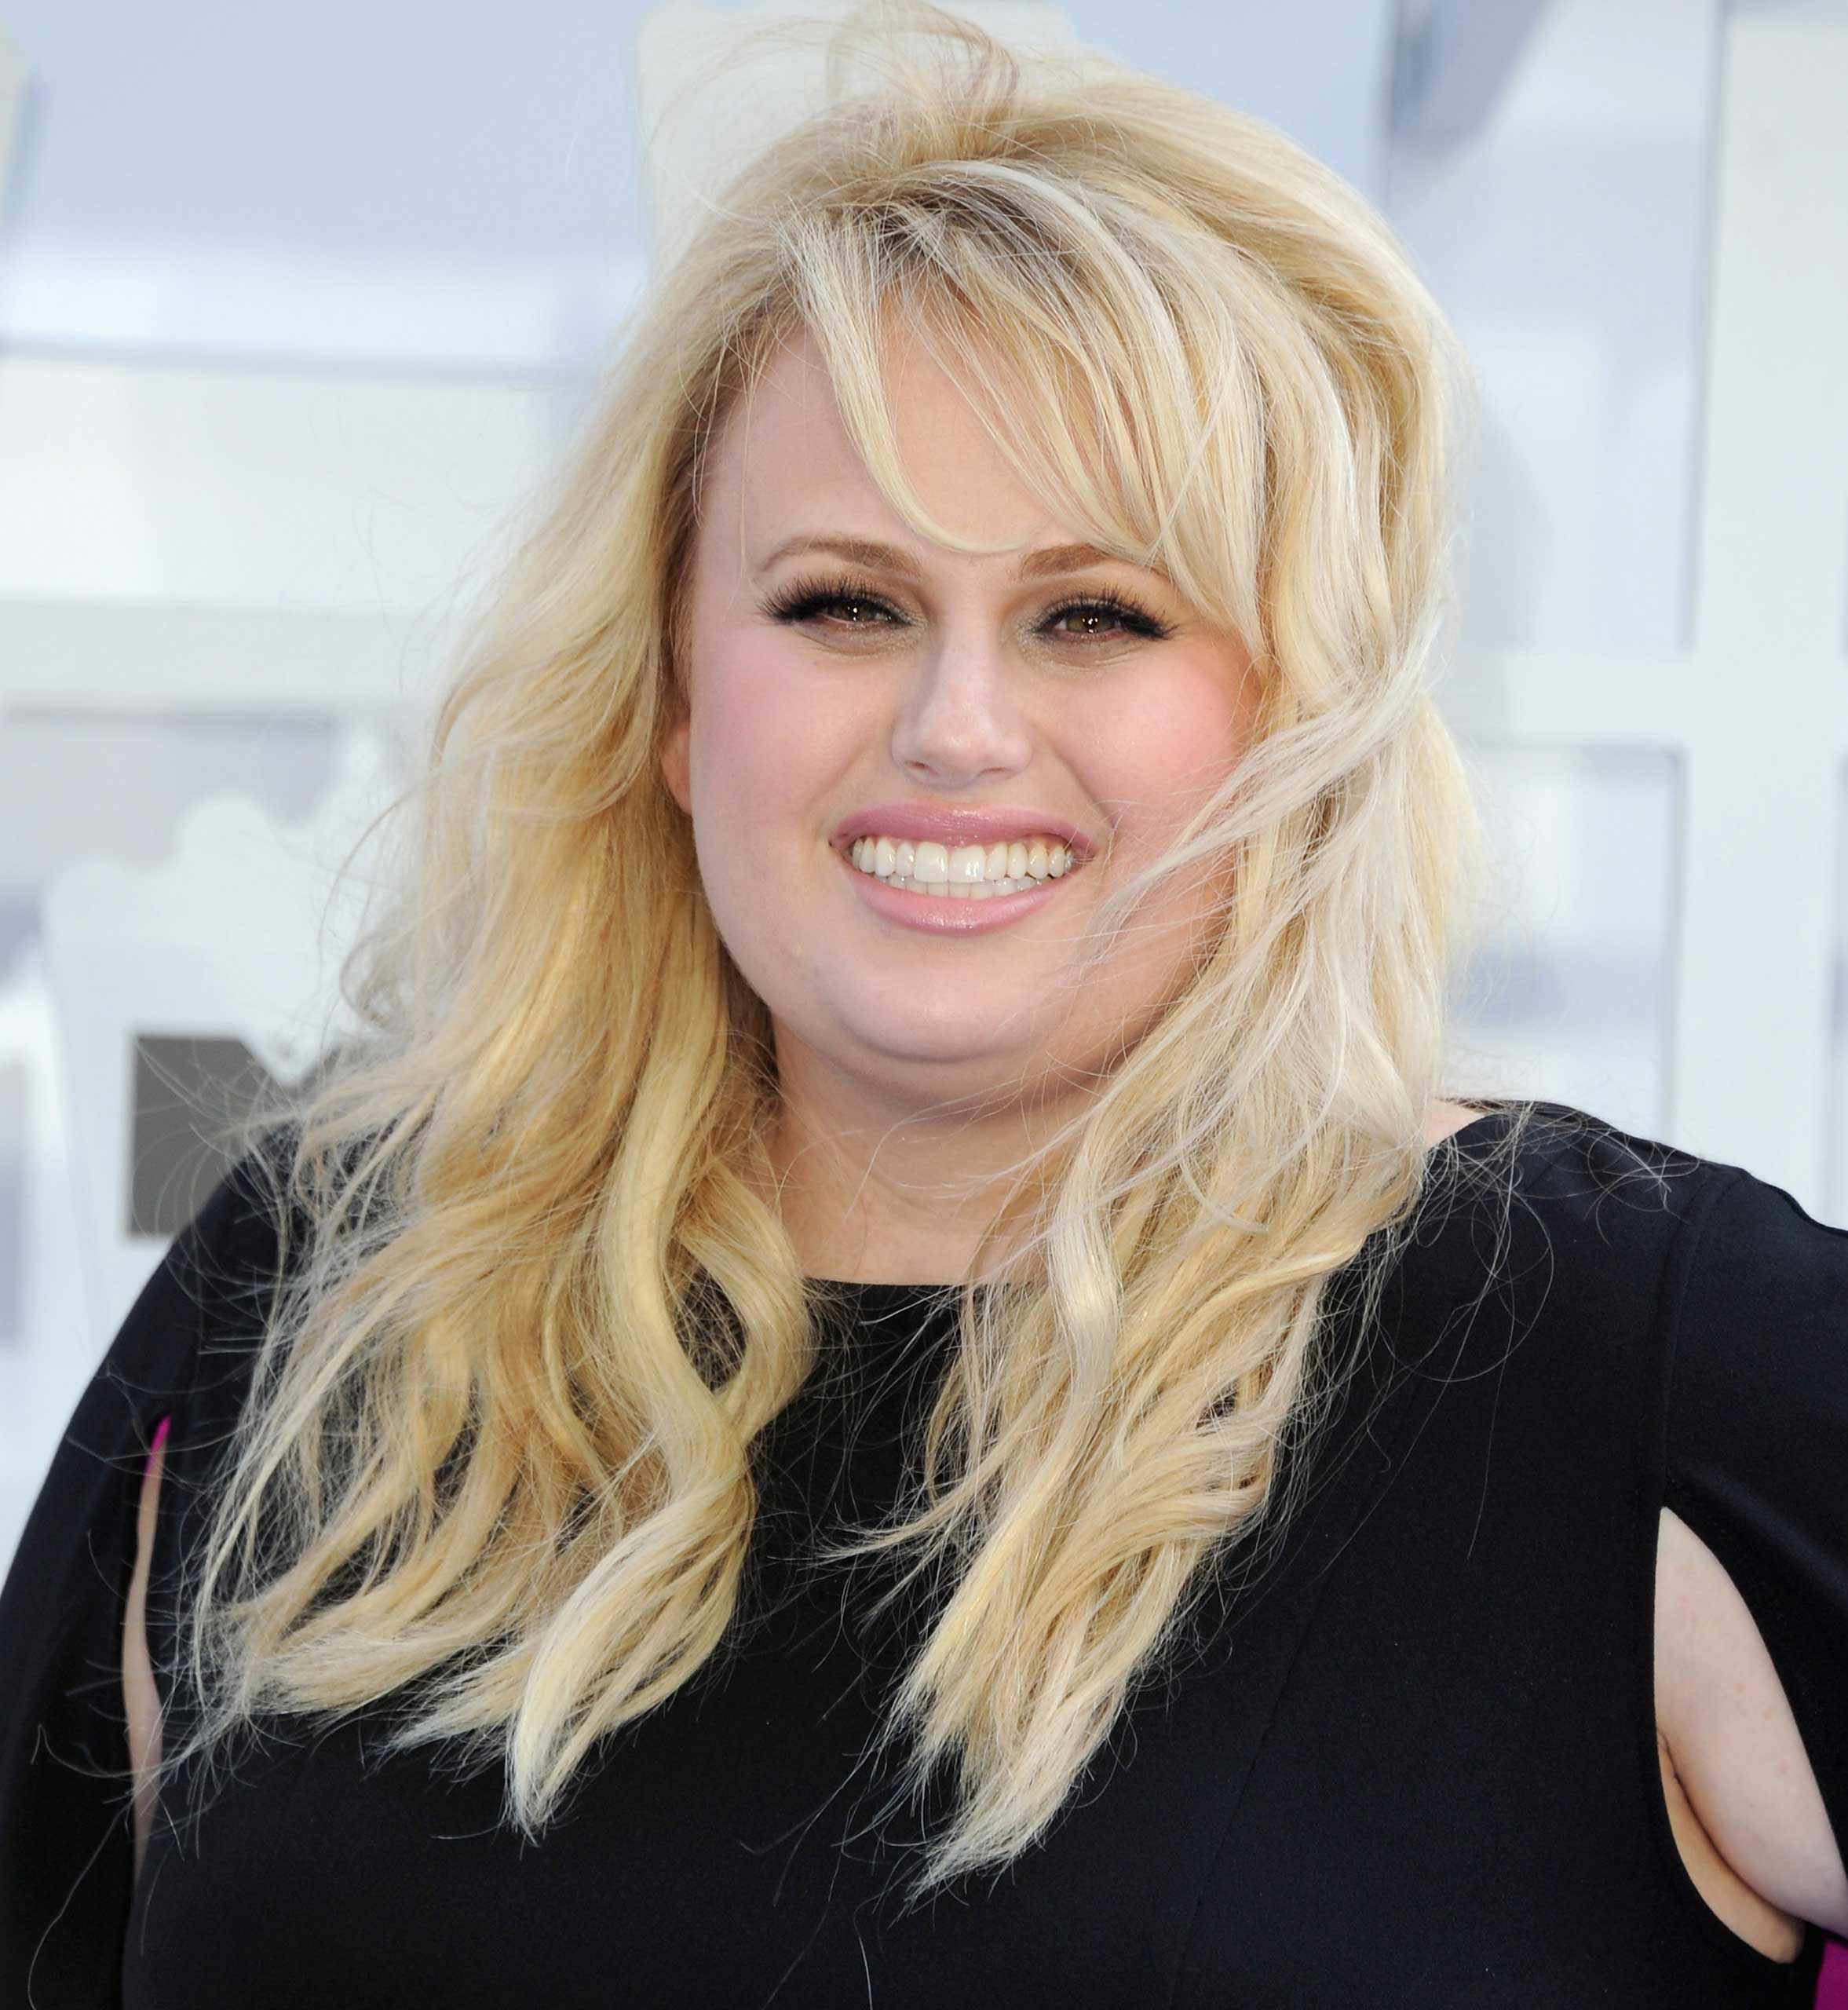 Actress Rebel Wilson arrives at the 2015 MTV Movie Awards at Nokia Theatre L.A.